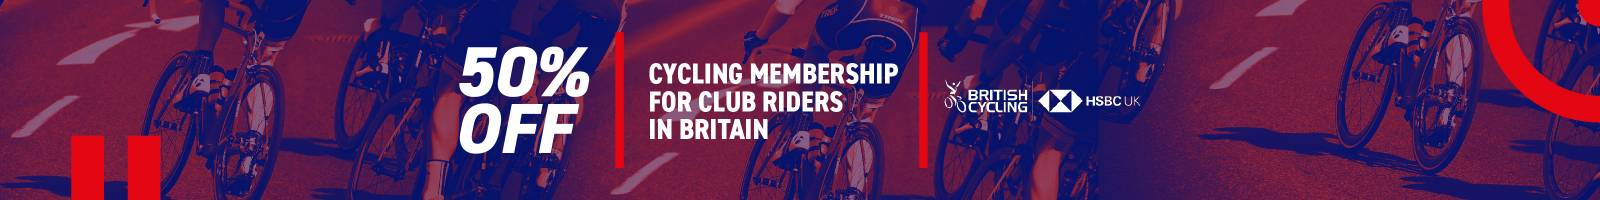 Membership discount for club members